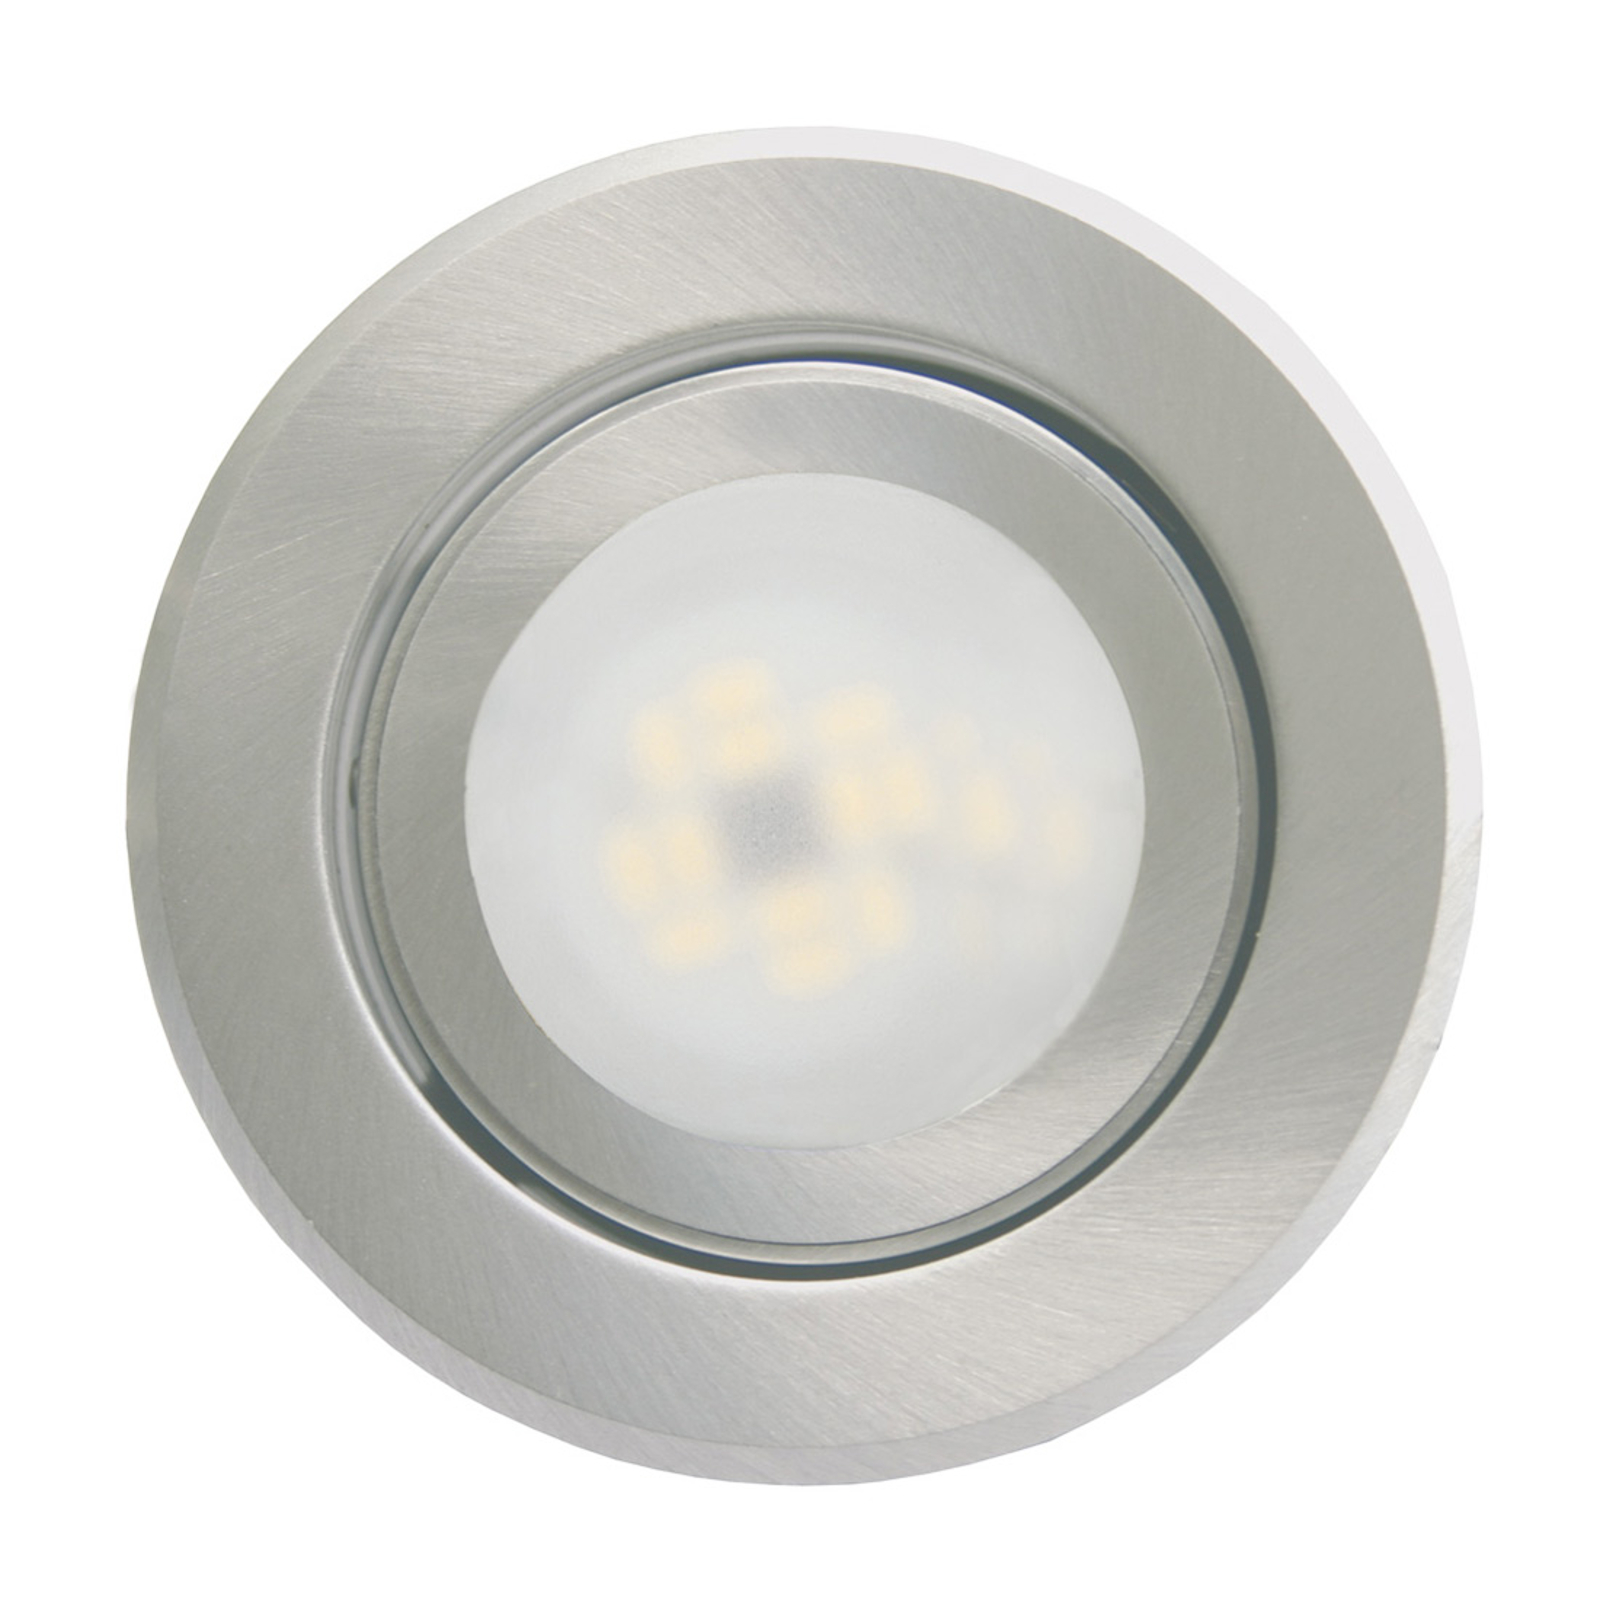 Recessed light Joanie with LED, brushed aluminium_1524115_1